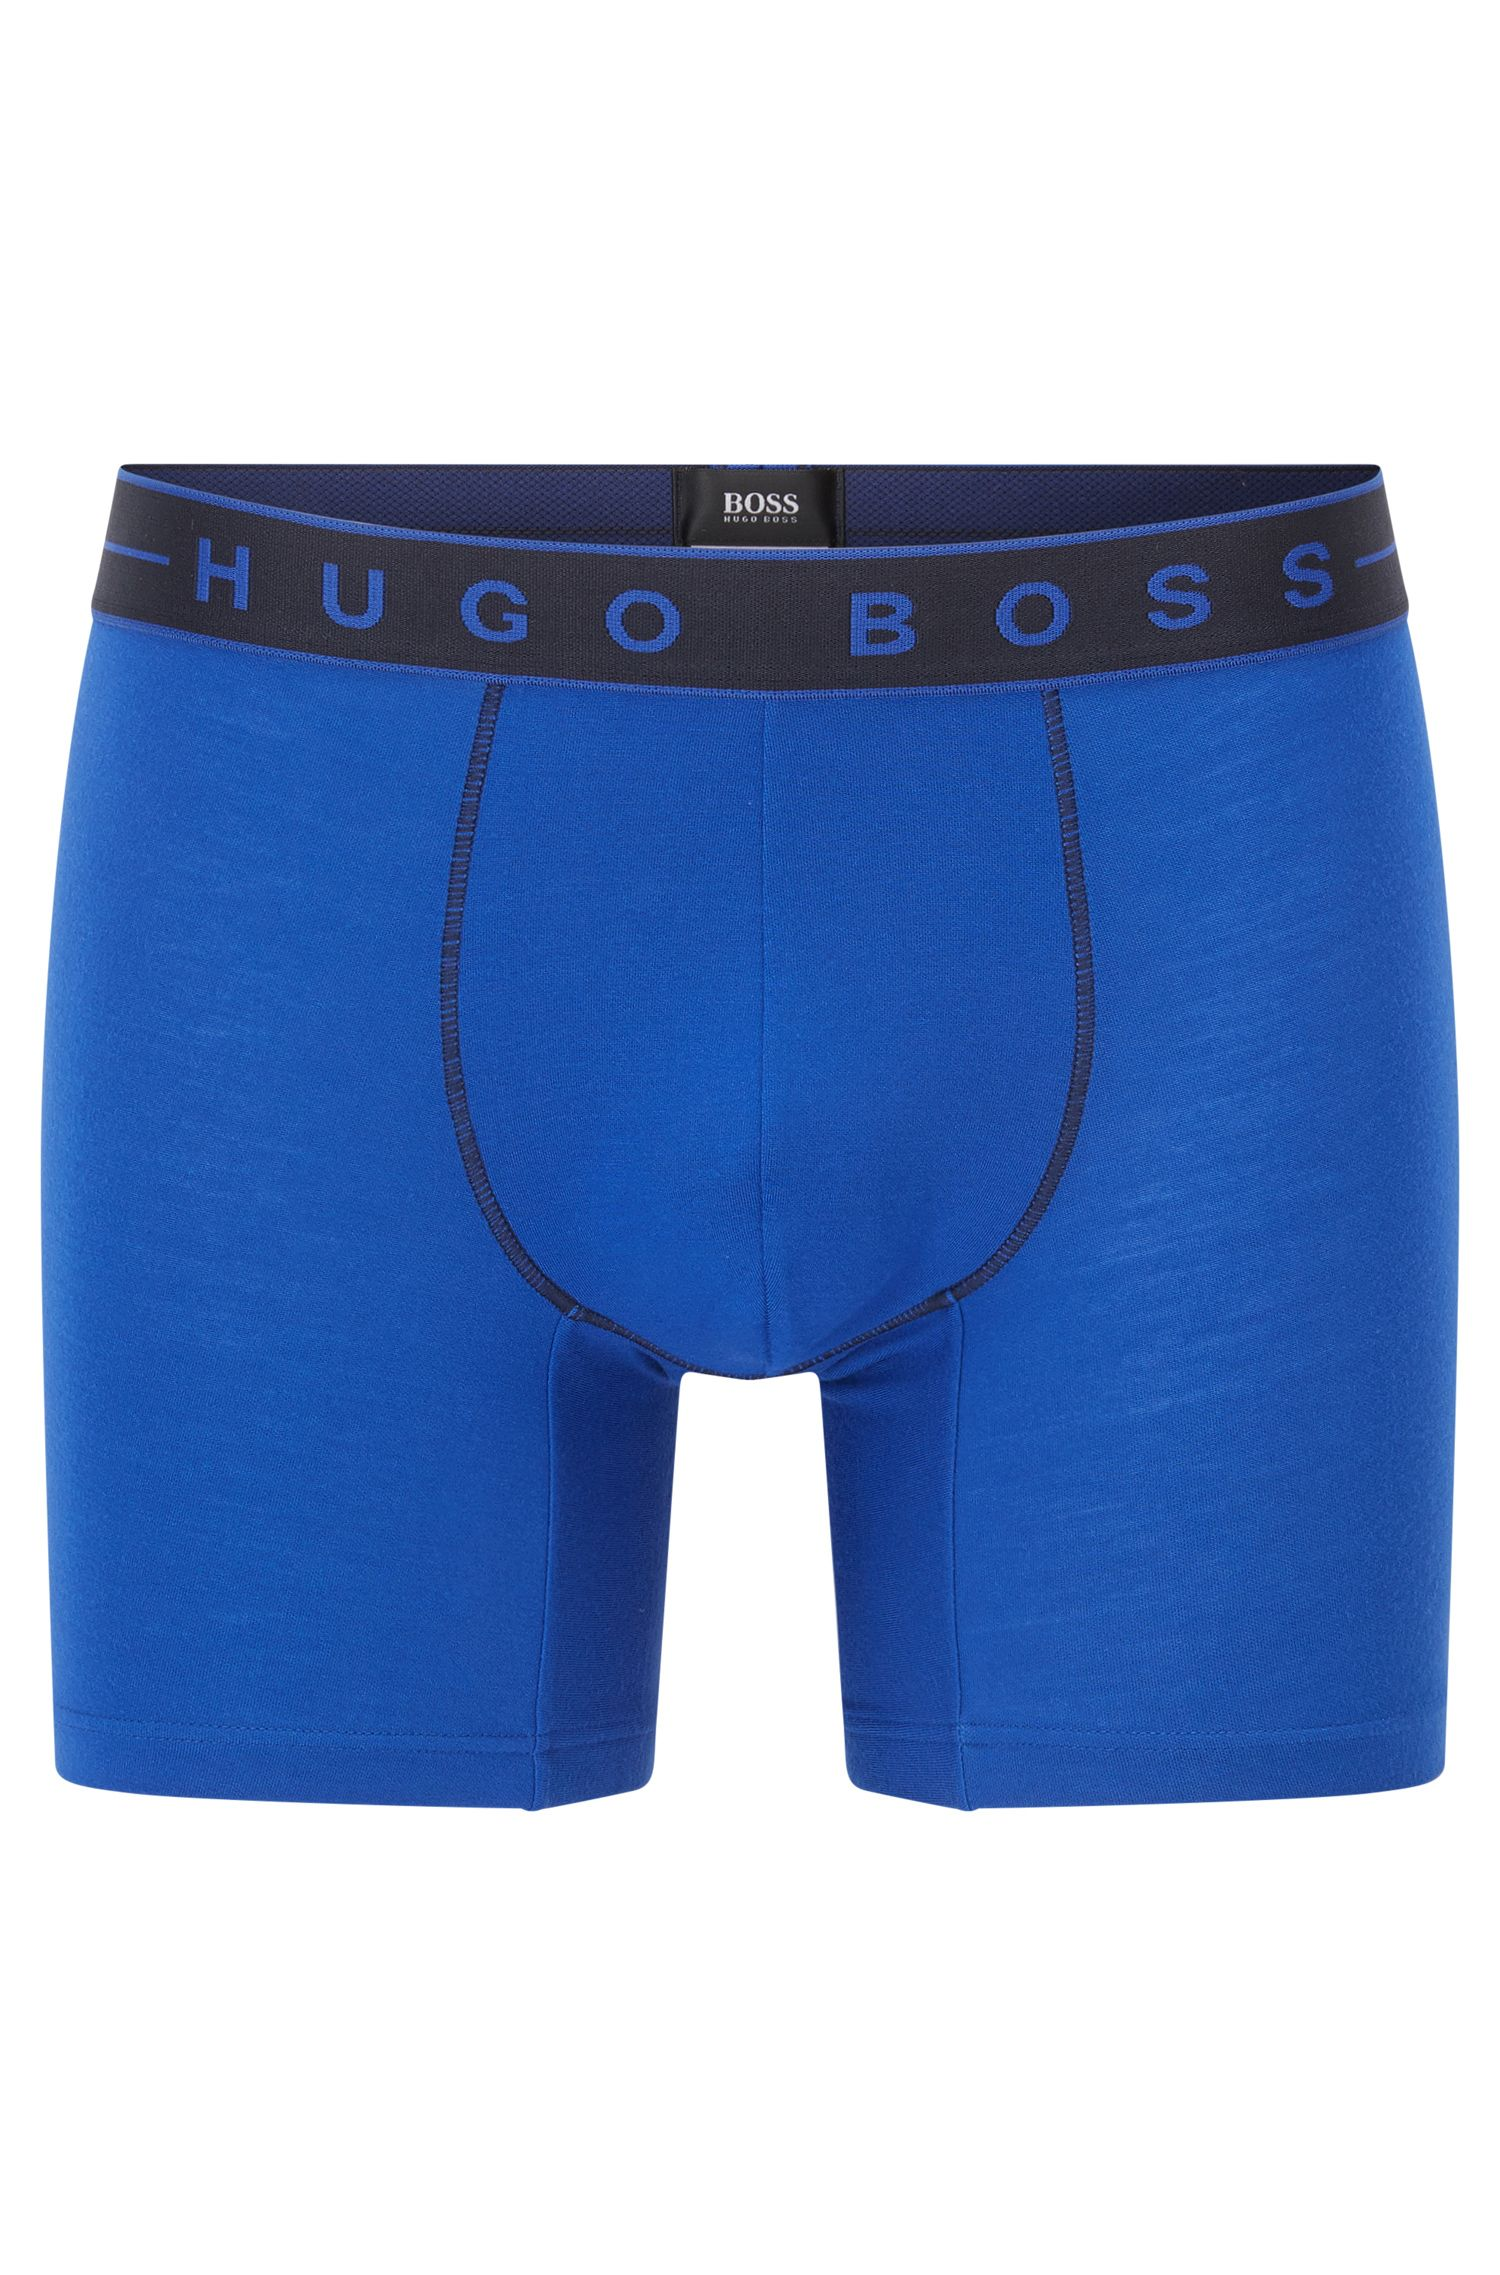 Boxer briefs in single jacquard, Blue